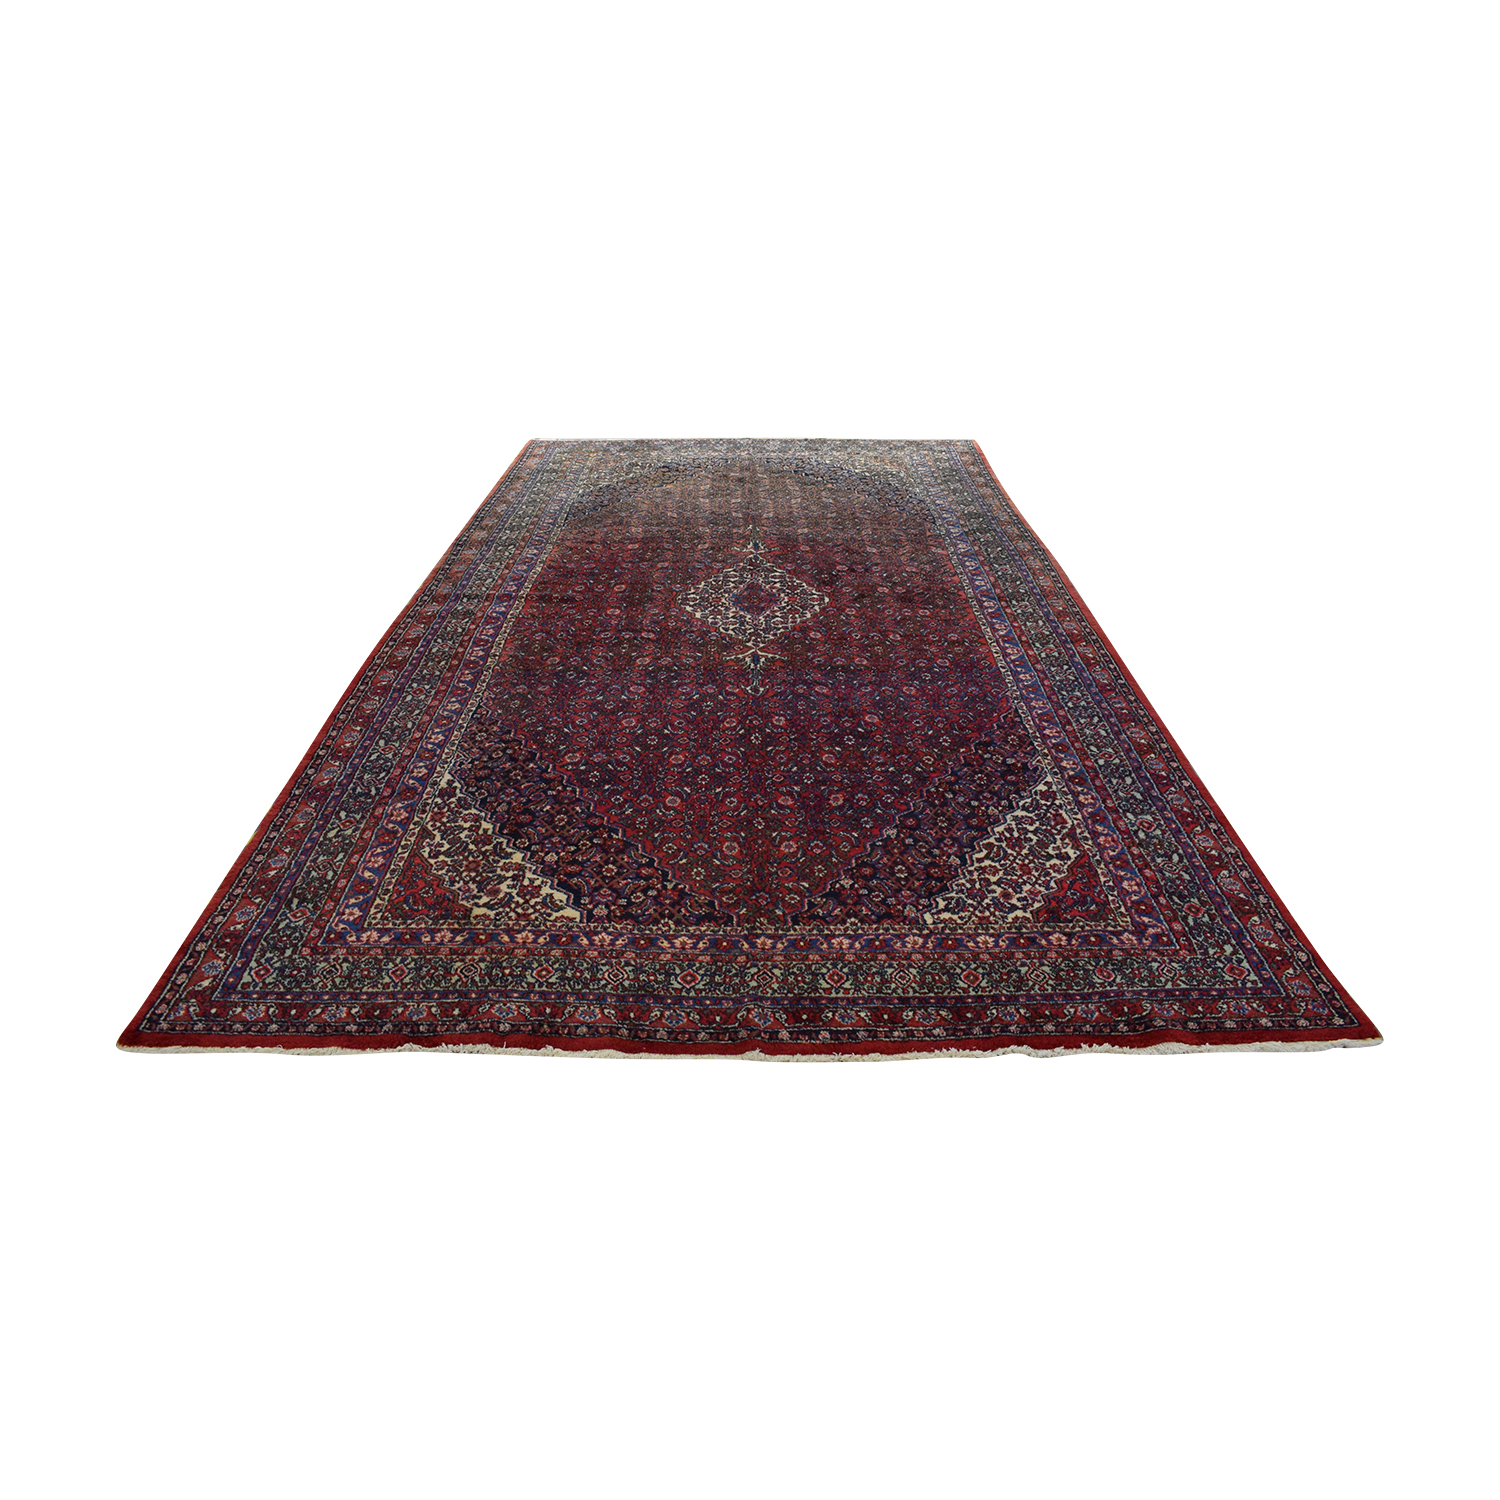 Vintage Bibikibad Persian Rug coupon